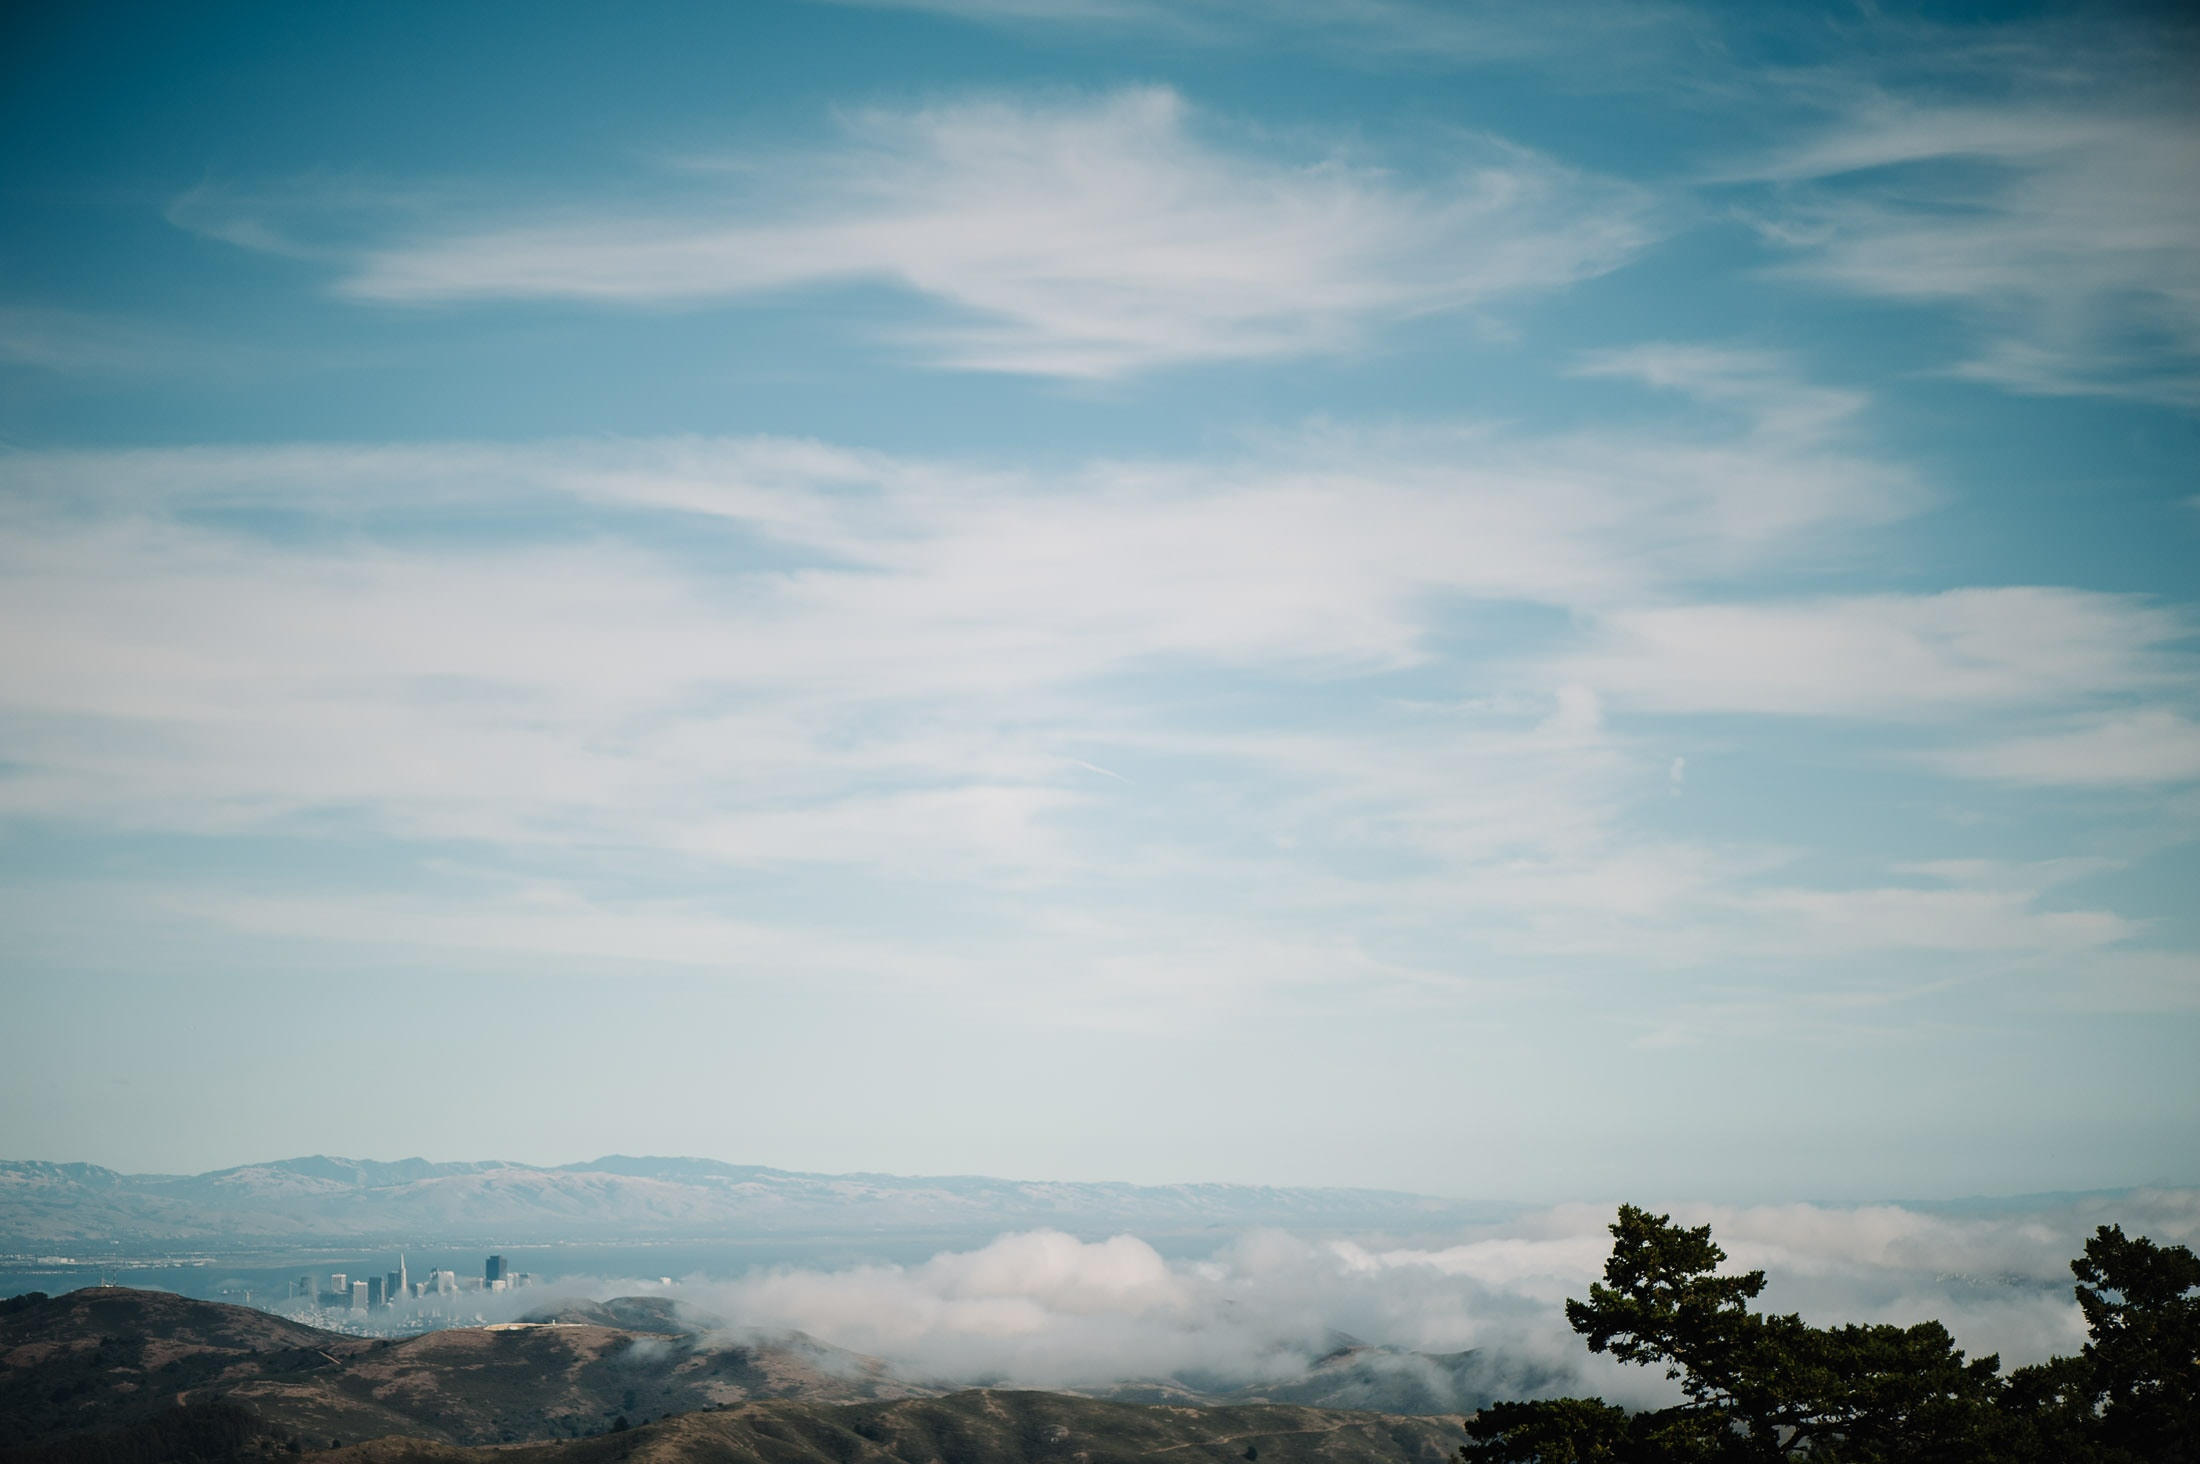 Epic view of San Francisco from Mount Tam